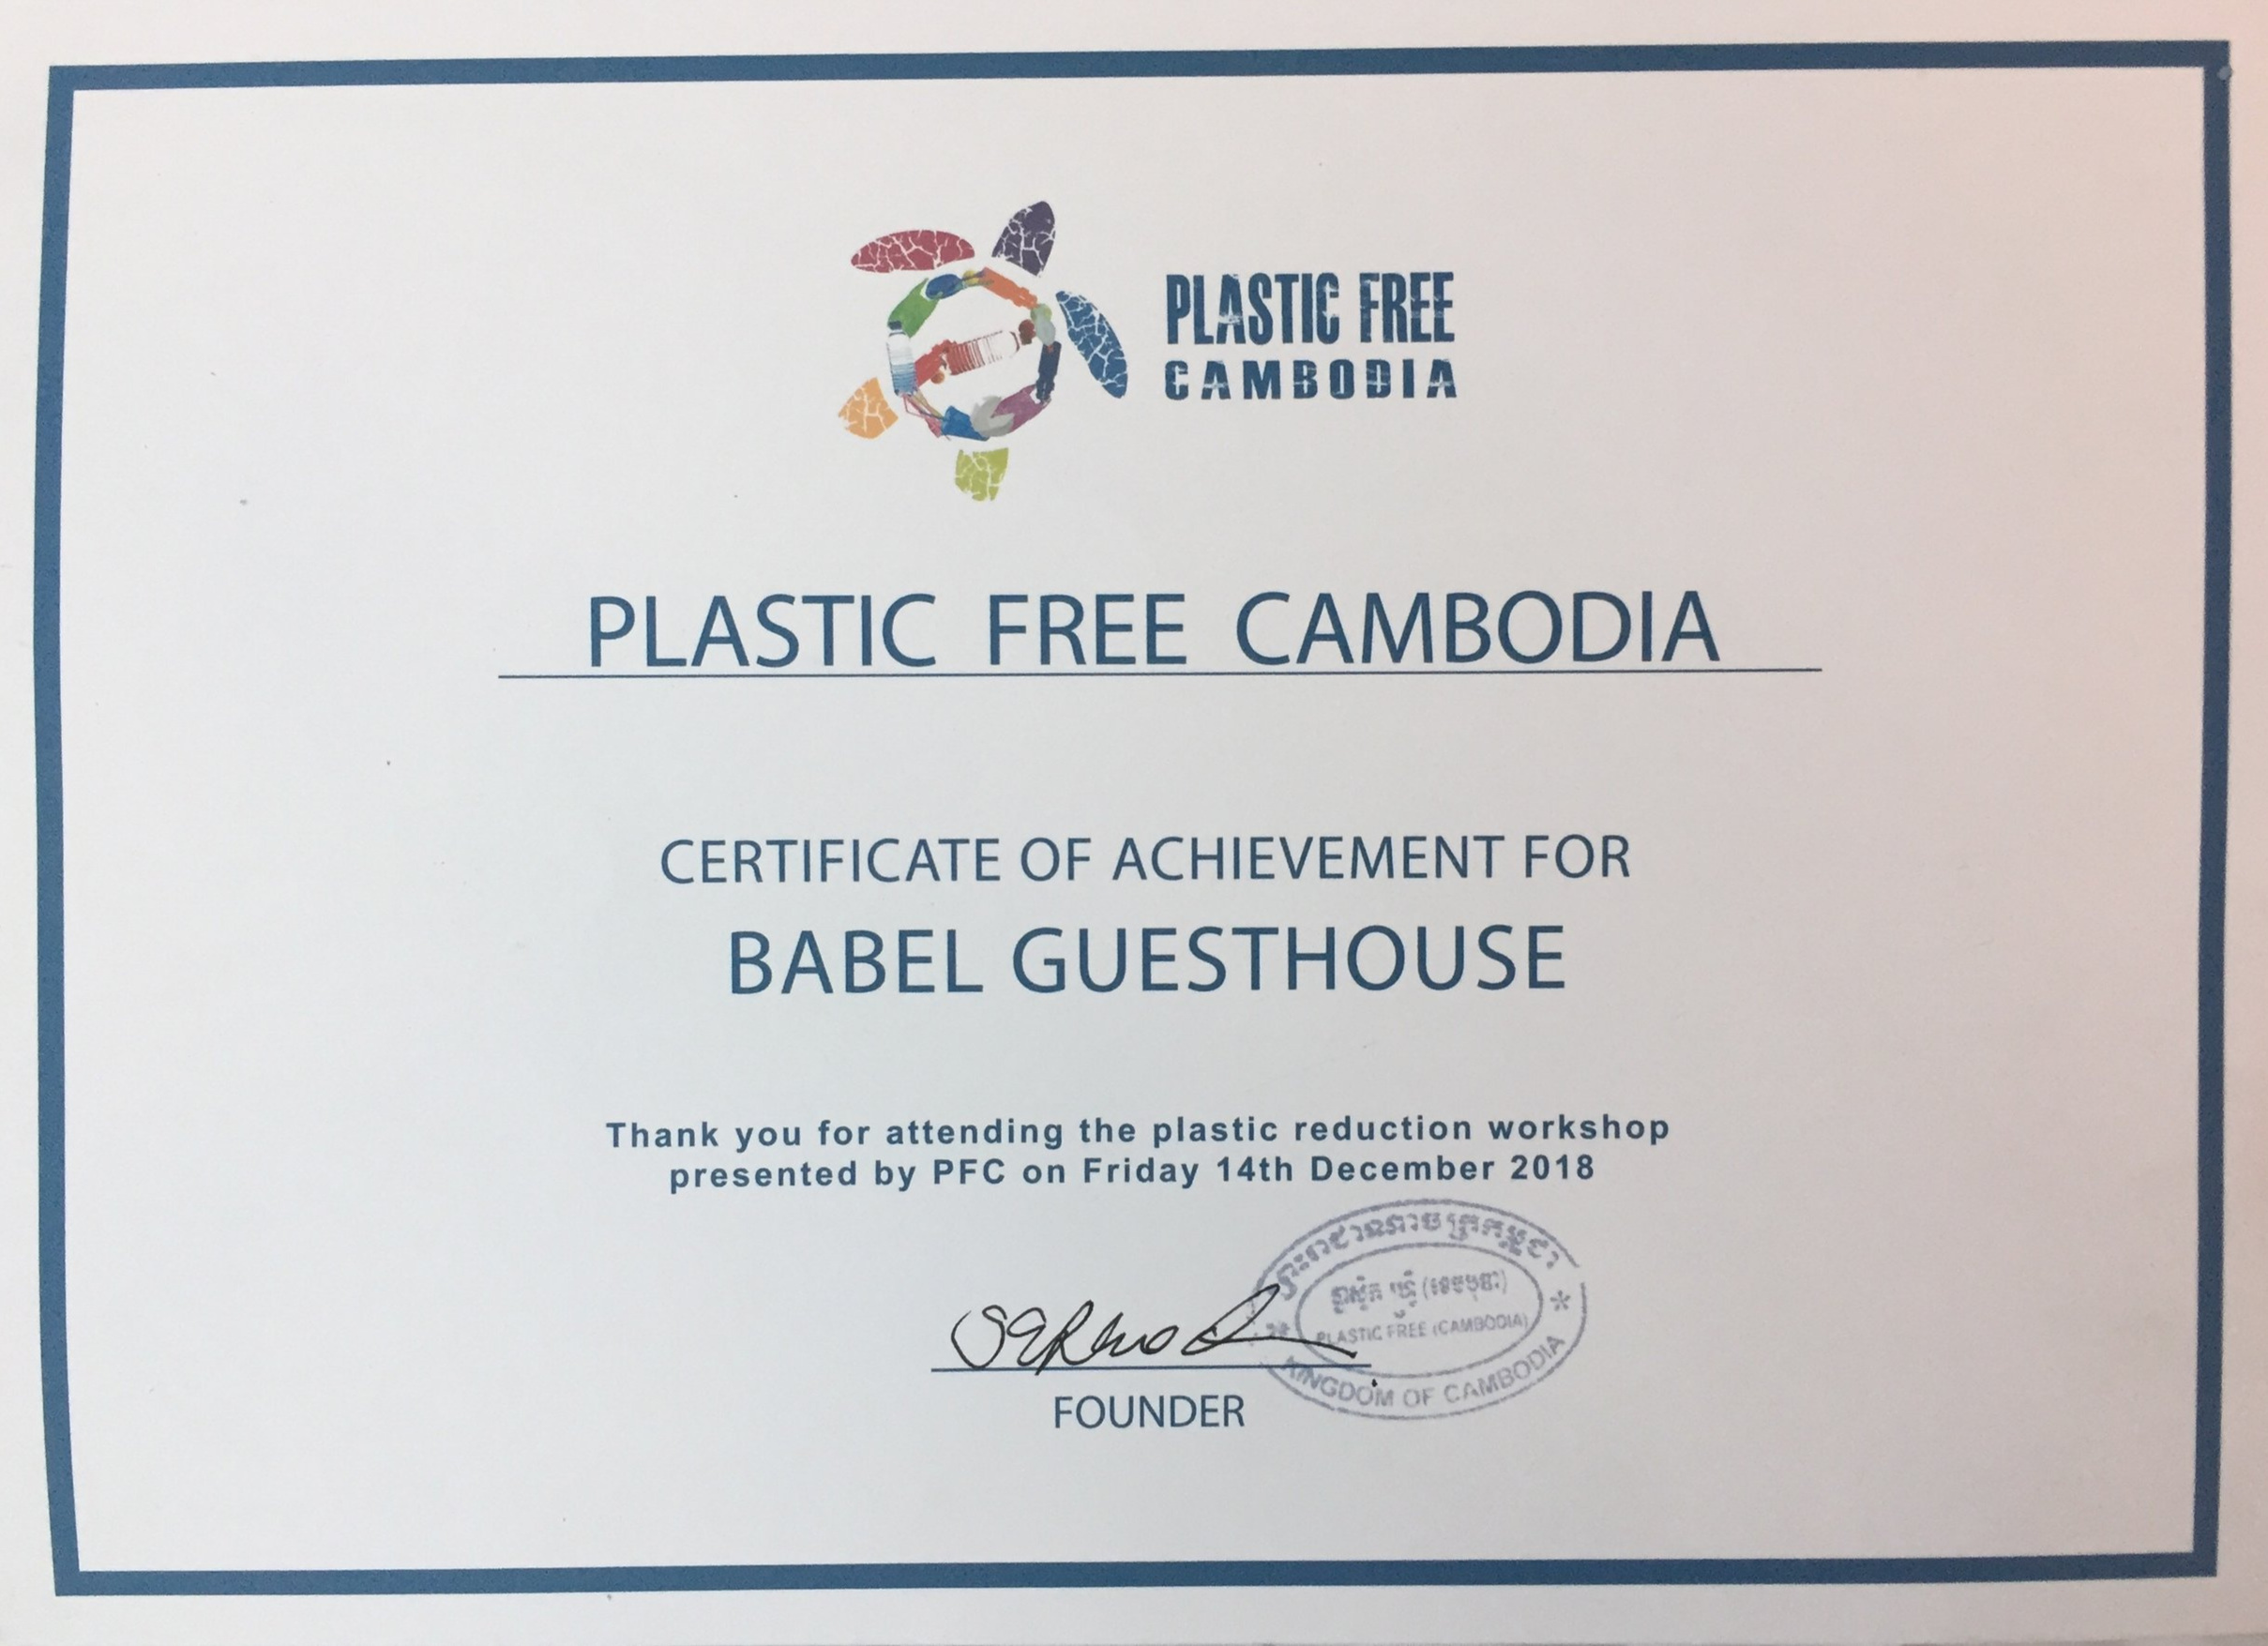 Plastic Free Cambodia - Plastic Free Cambodia (PFC) is working to reduce the use of single-use plastic in order to create a healthier community and environment. Babel Guesthouse received a certificate from PFC after all staff and Tuk Tuk drivers attended our first plastic reduction workshop in 2018.